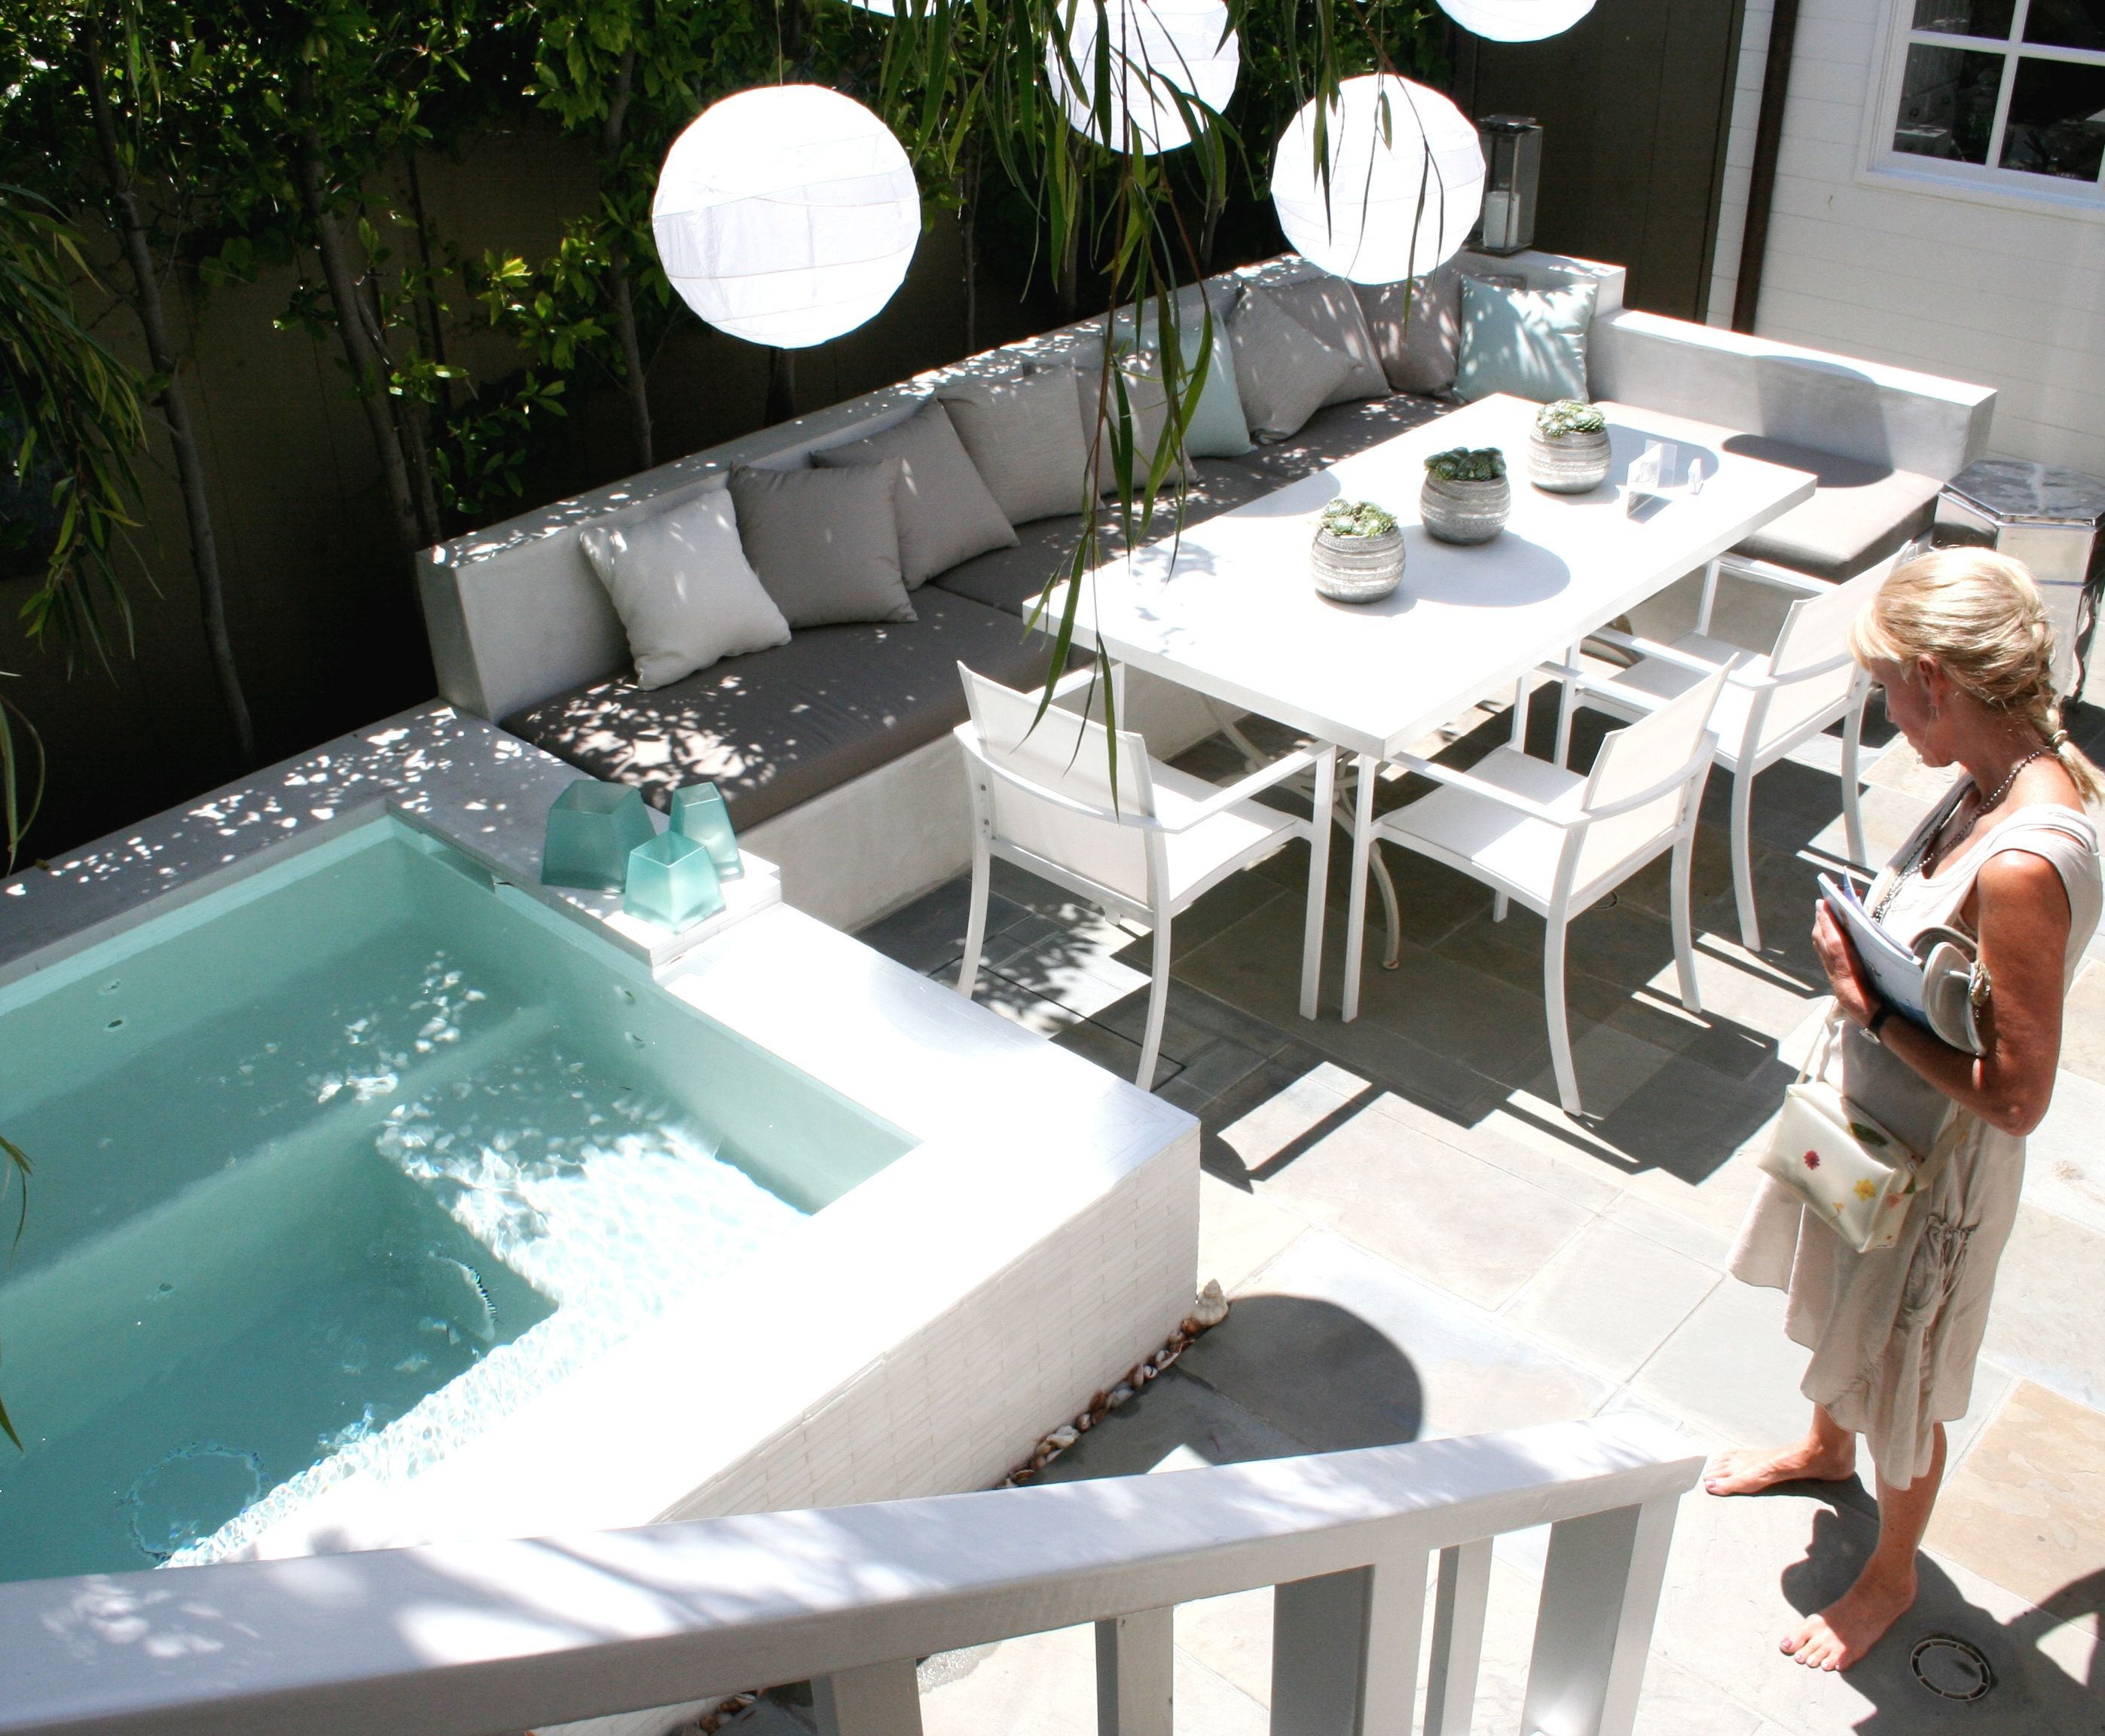 Fun patio space with hot tub table and banquette